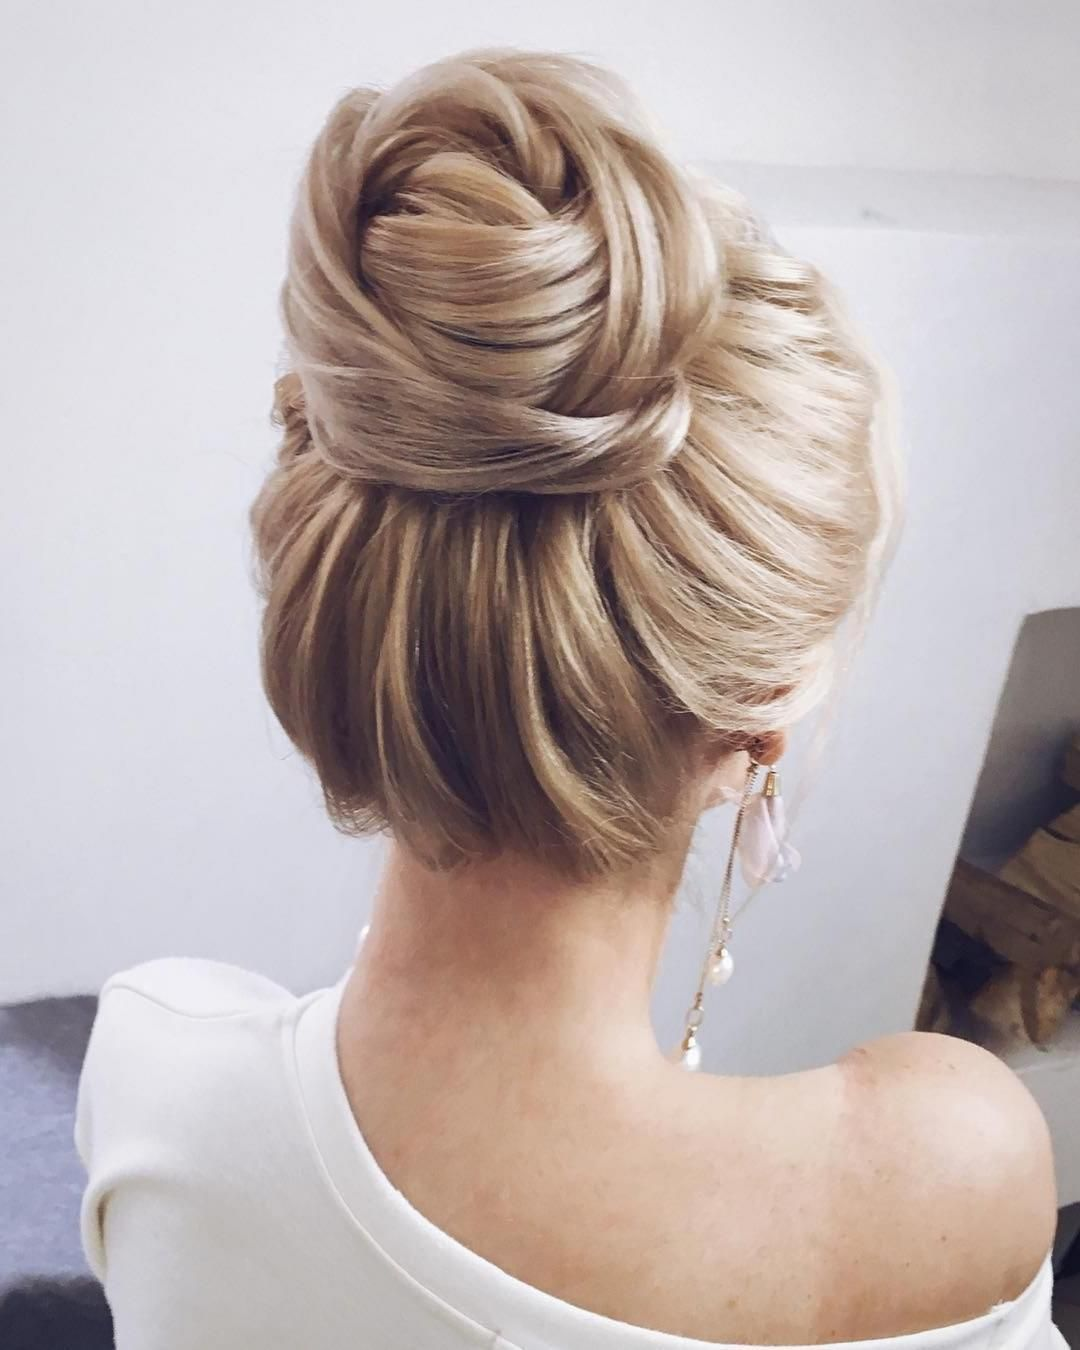 The Best And Fabulous Hairstyles For Every Wedding Dress Neckline Whether You Re A Summer Winter Bride Or A De Hair Styles Hairstyle Wedding Hair Inspiration